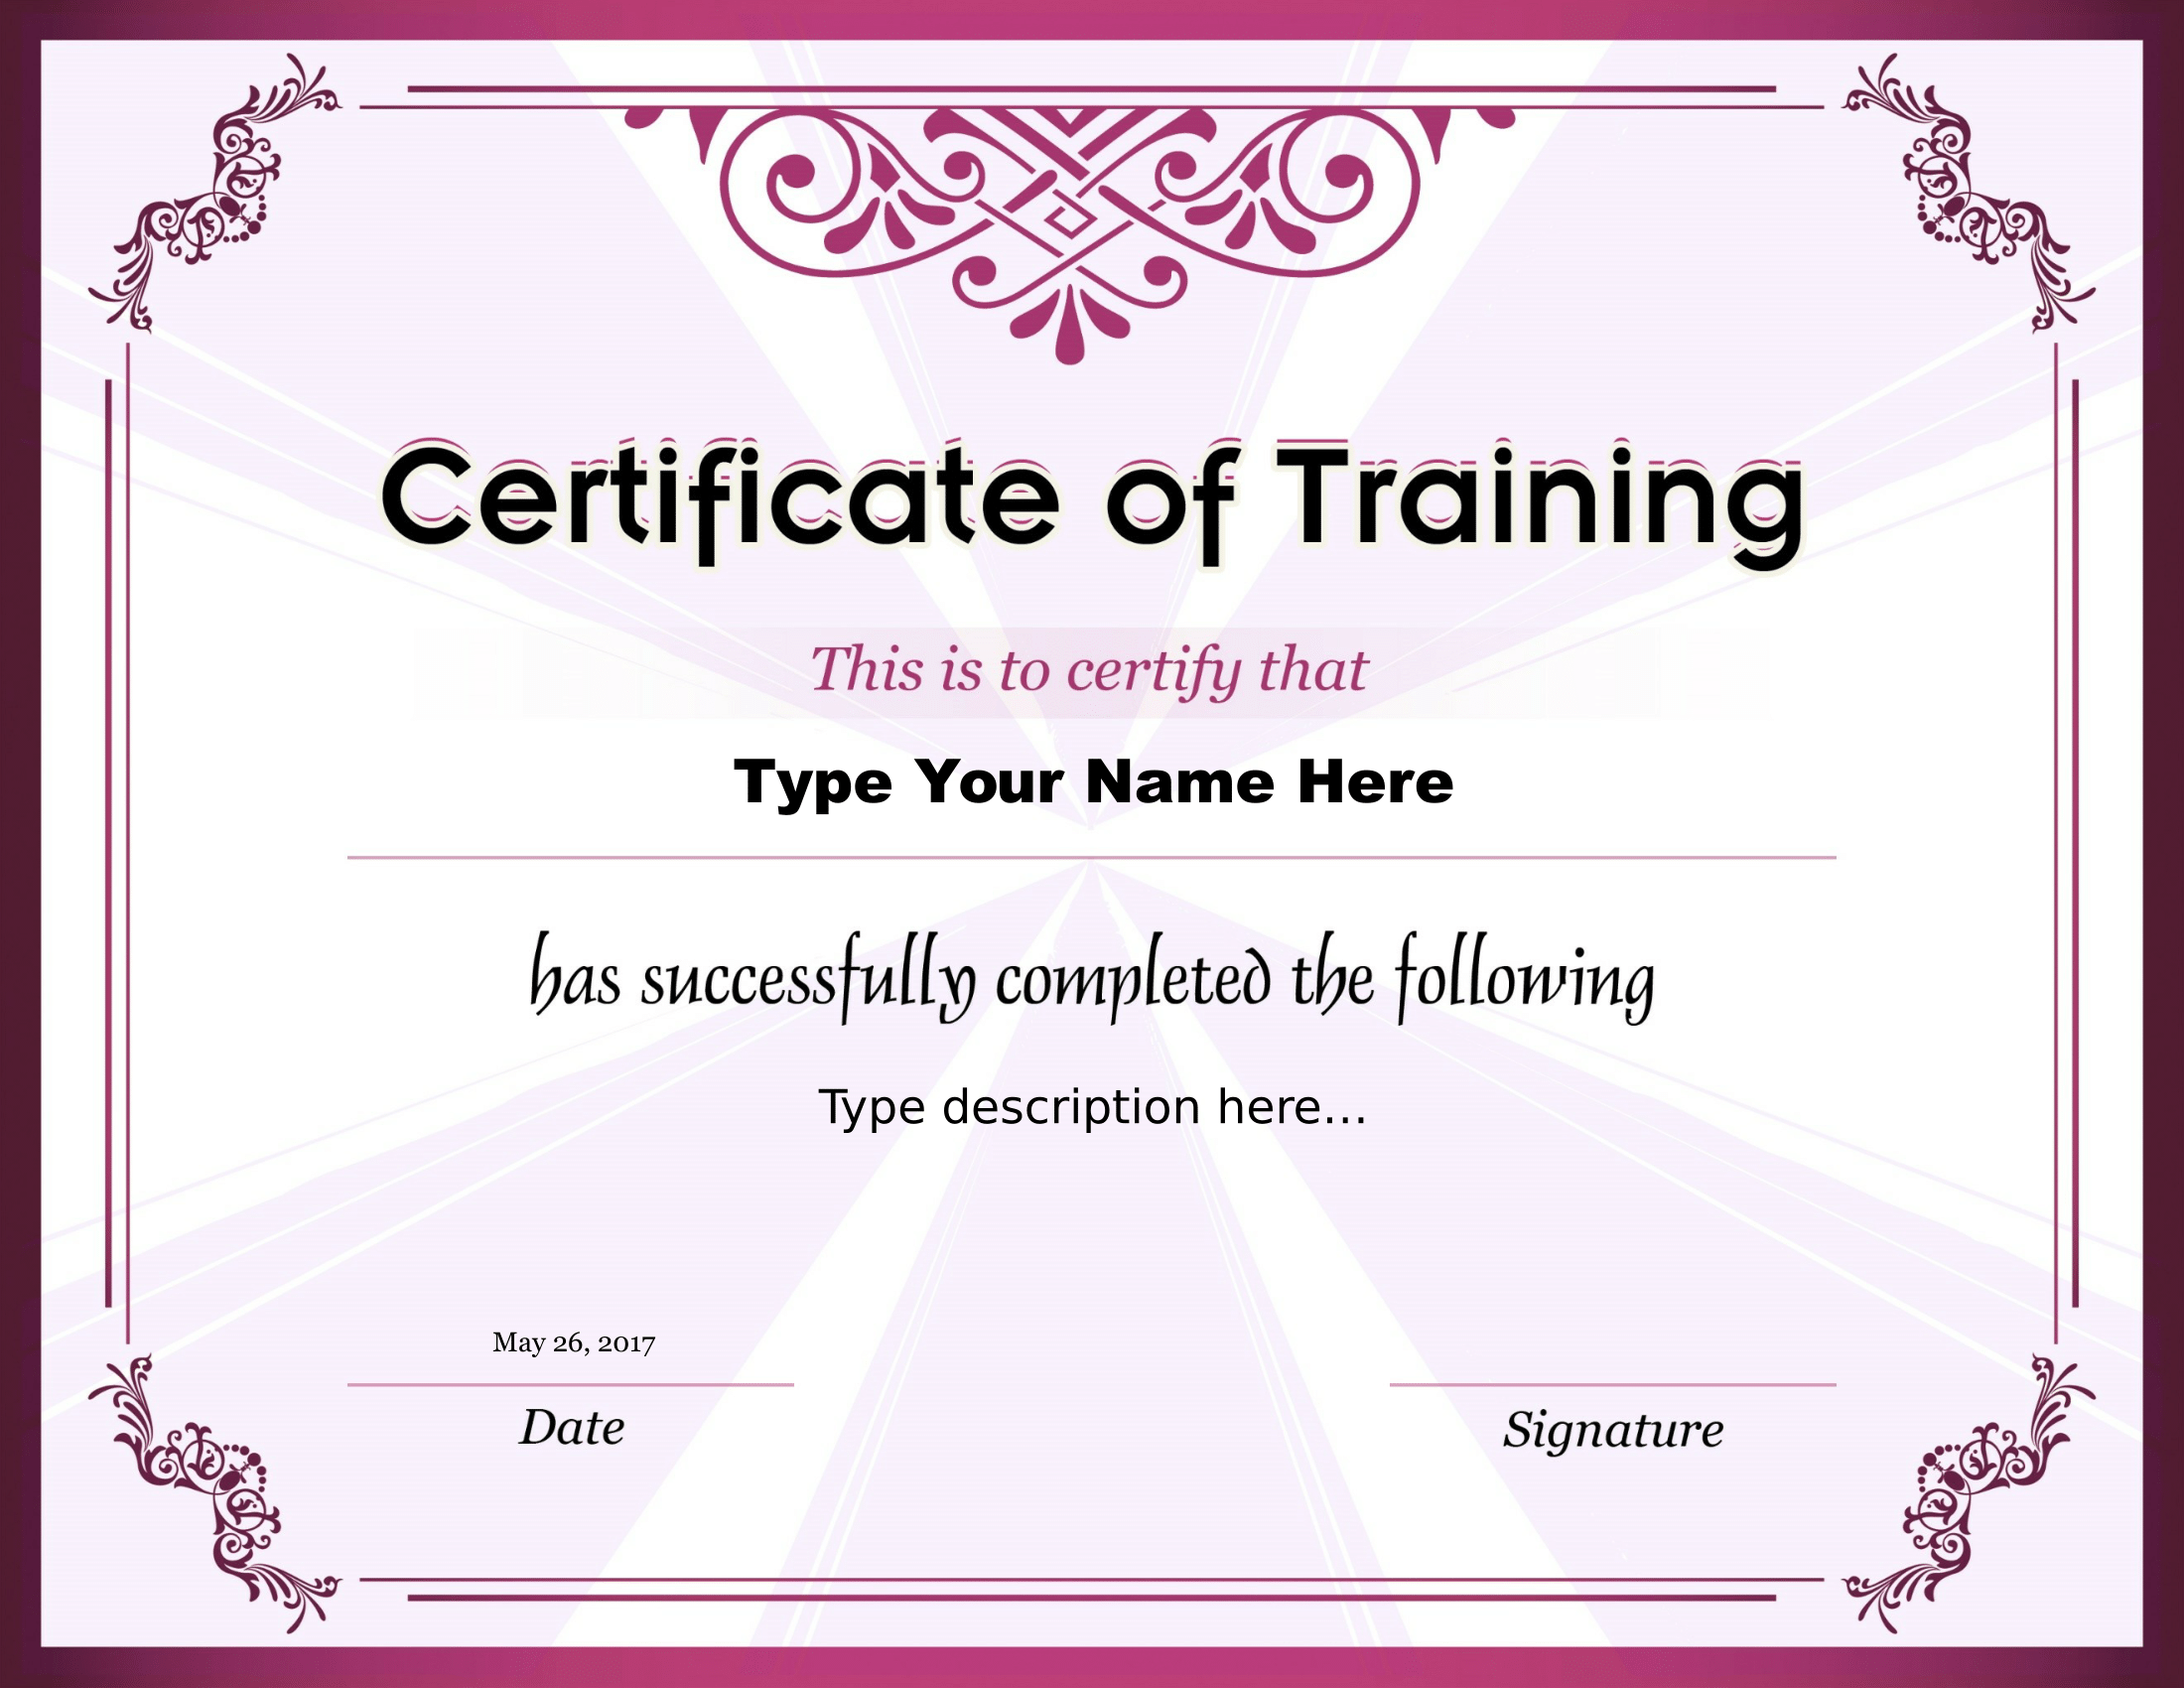 Certificate of Training – FREE Download